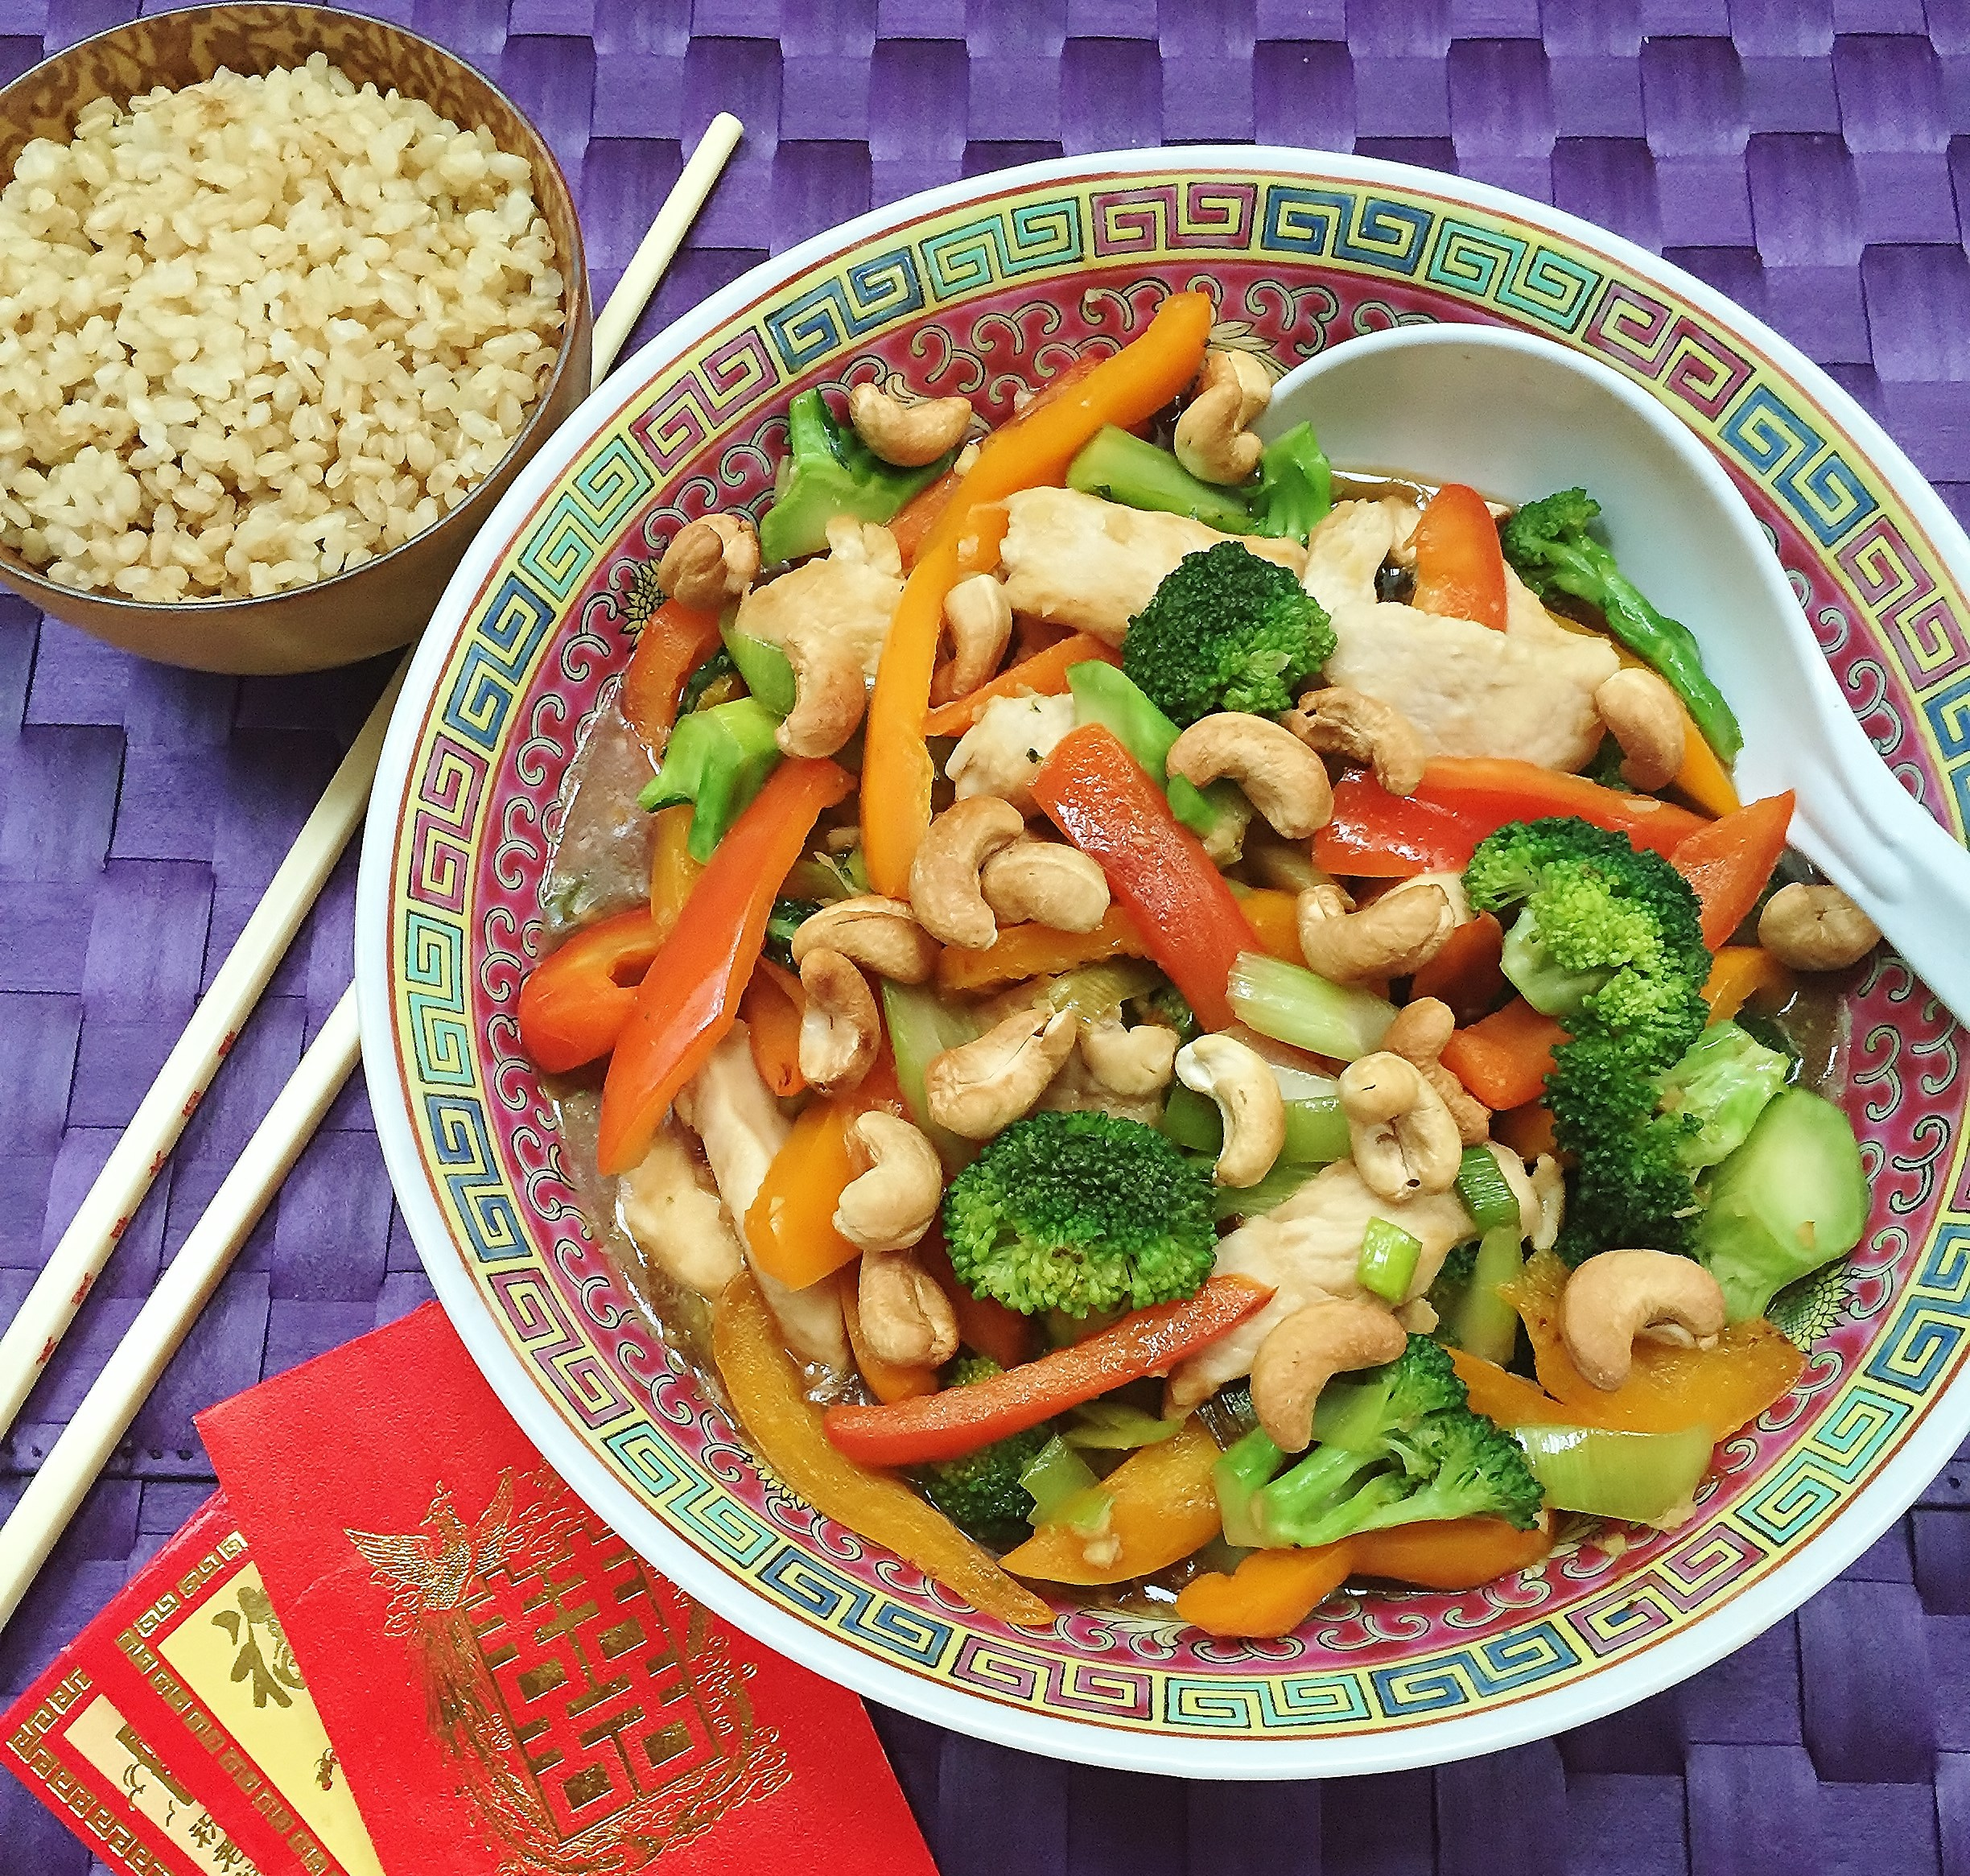 Stir Fry for Year of the Monkey